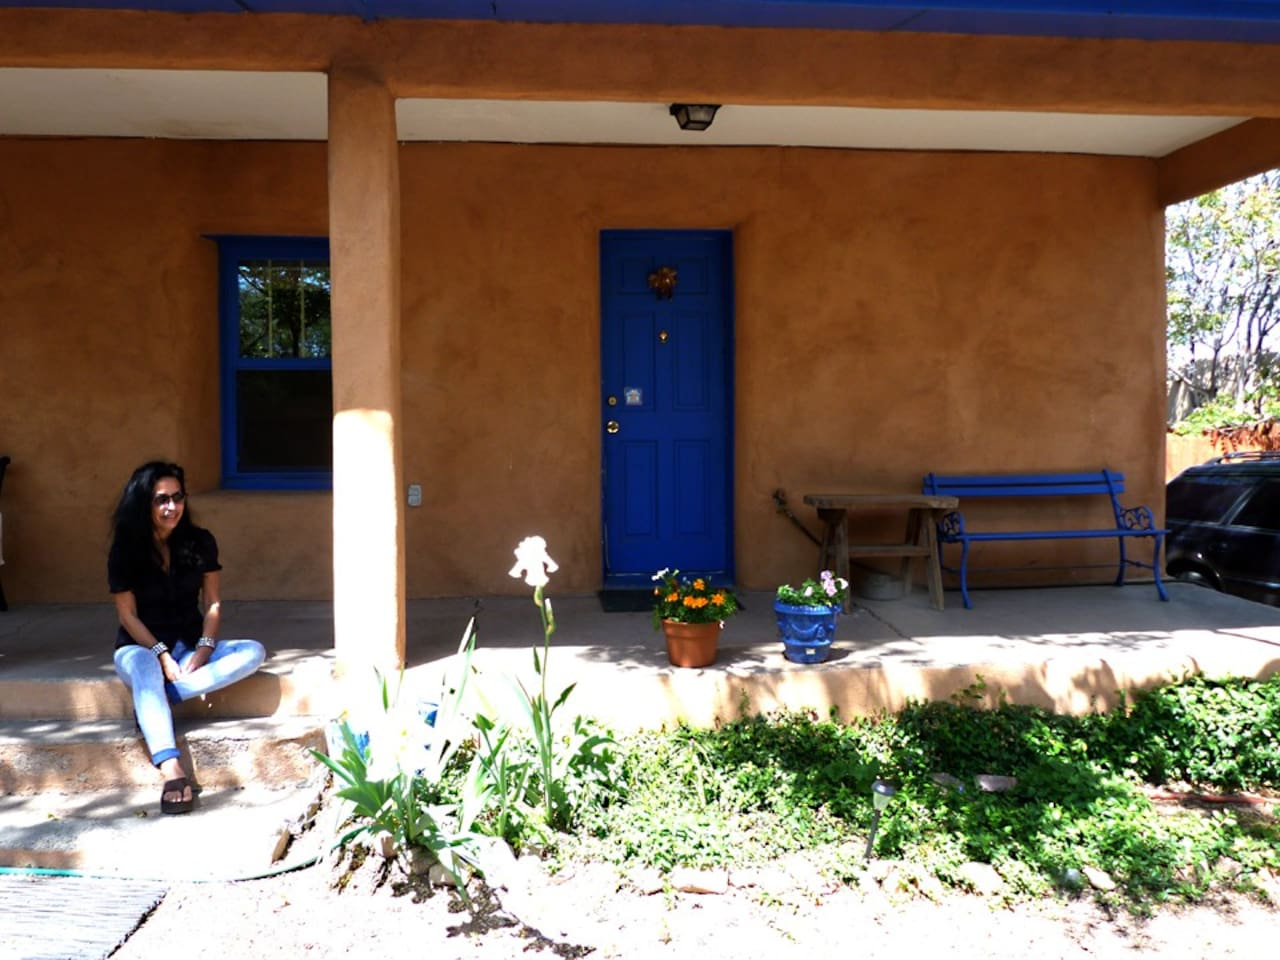 This is the front of the house with a guest.